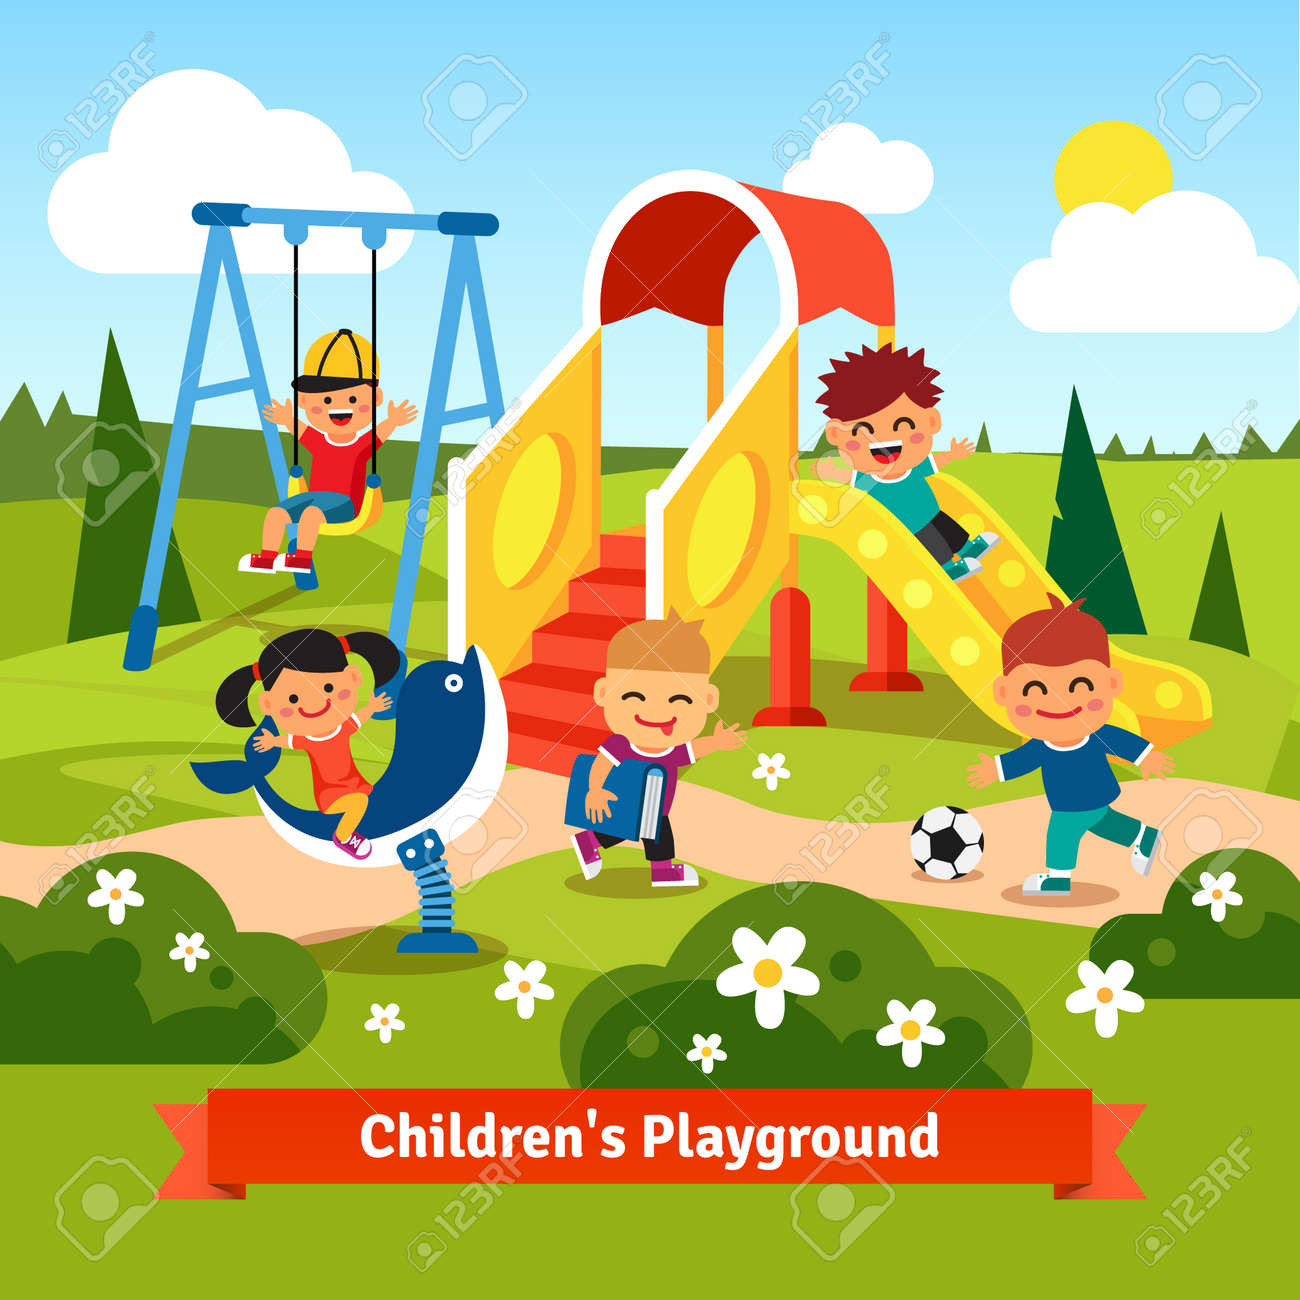 kids playing on playground swinging and sliding children flat rh 123rf com playground clipart png playground clipart borders